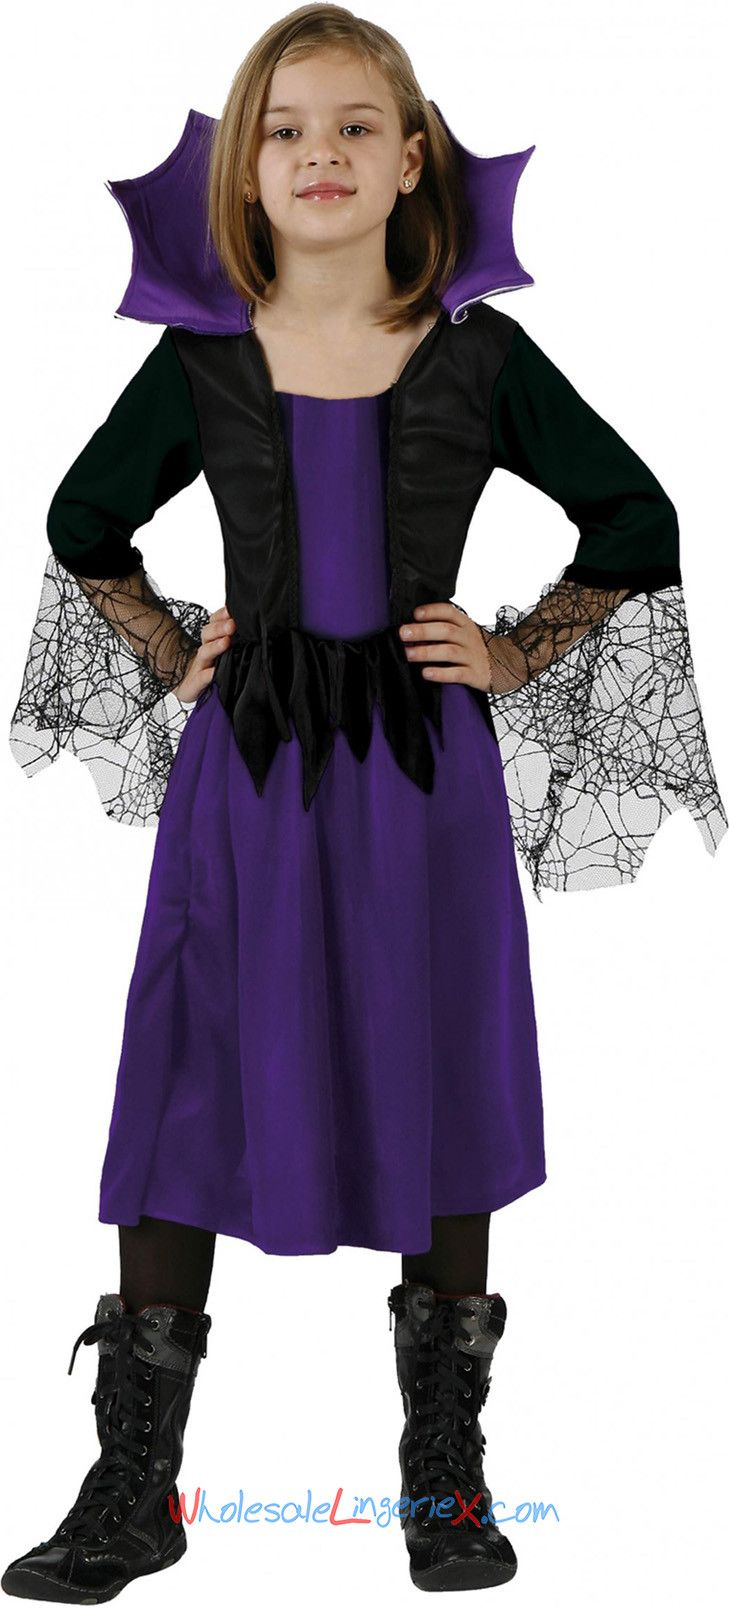 witch costumes kid costumes halloween costumes costume ideas spider vampires - Spider Witch Halloween Costume